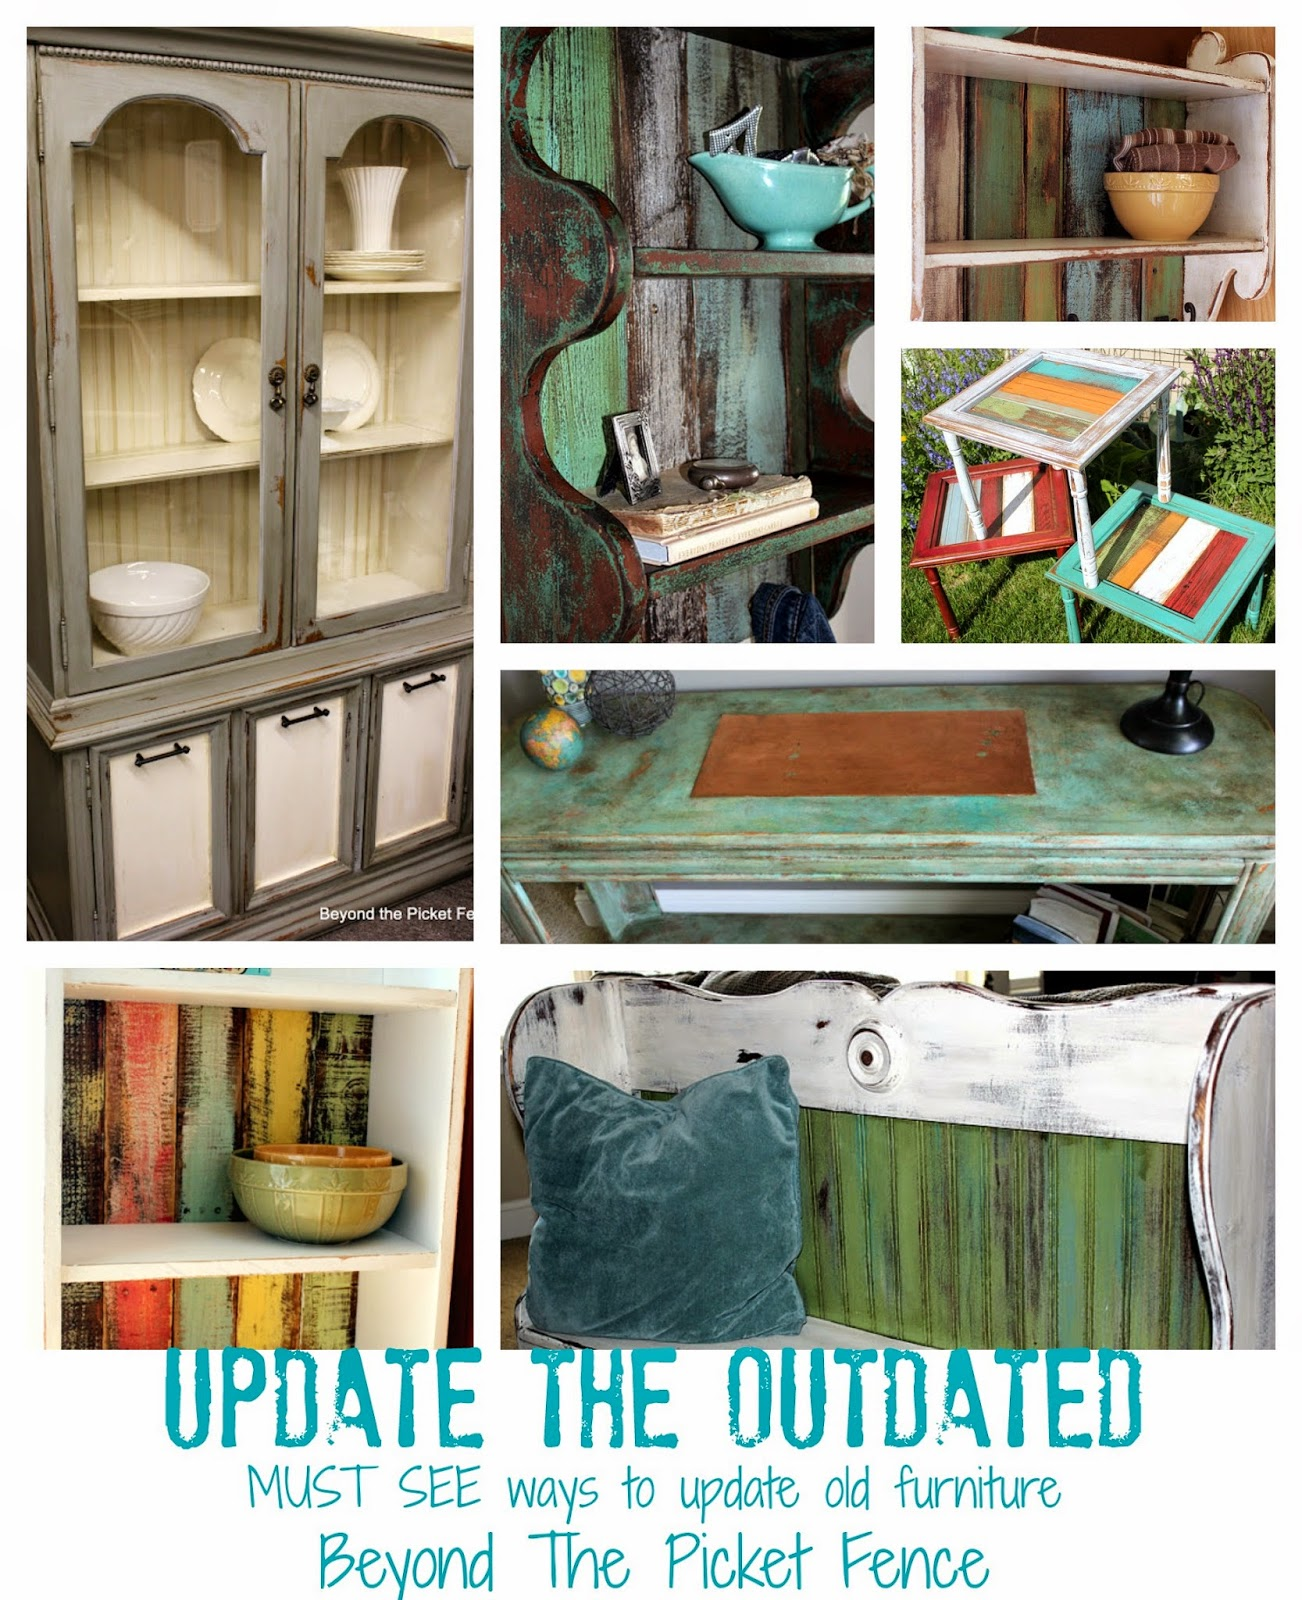 update outdated furniture http://bec4-beyondthepicketfence.blogspot.com/2014/09/updating-outdated.html